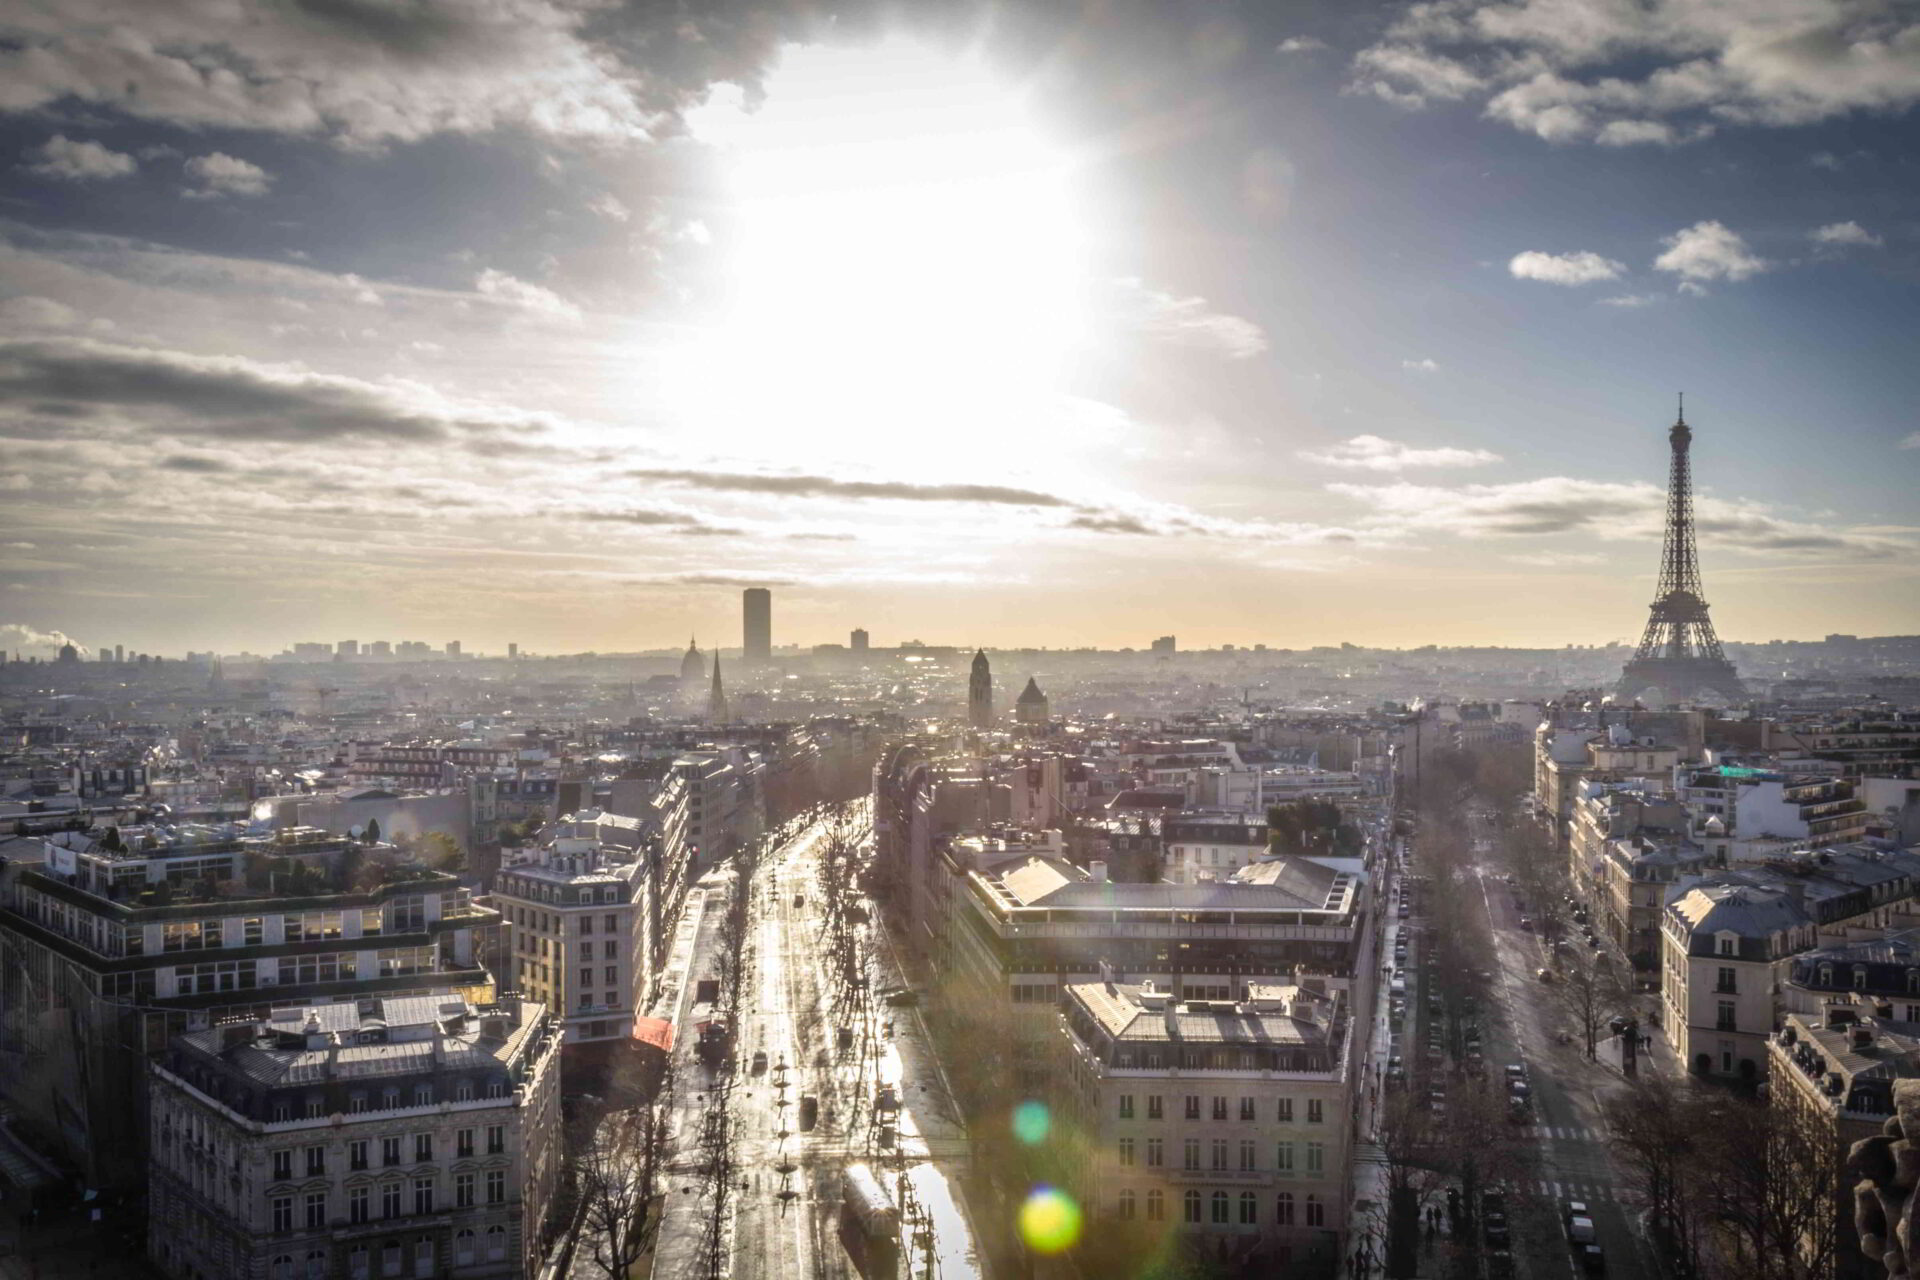 Americans in France: 4 Key Places to Visit on a Private Tour